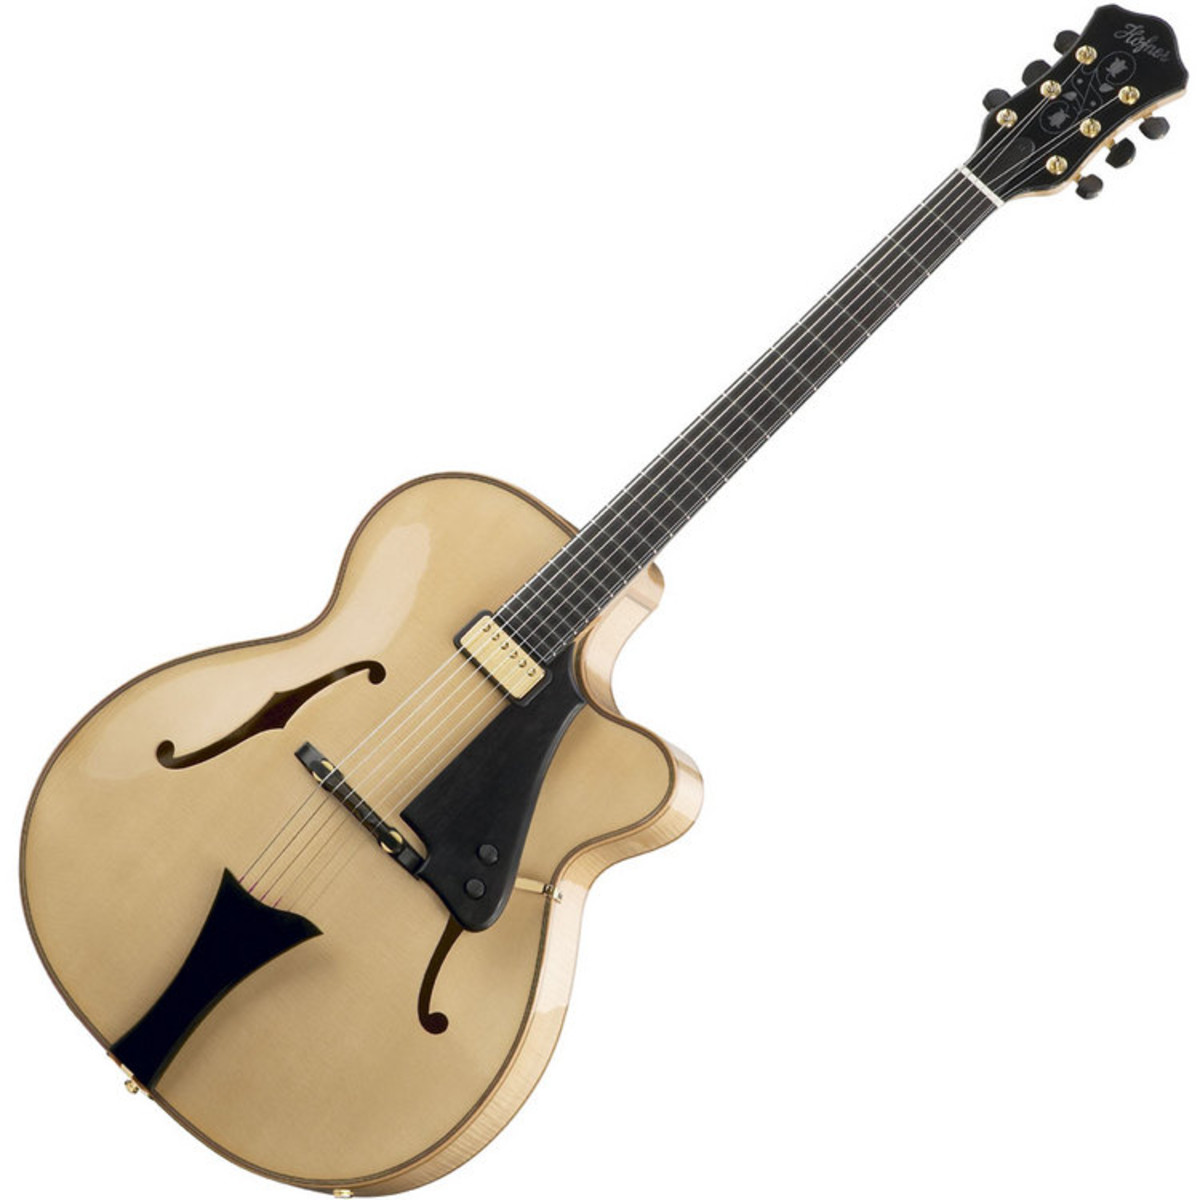 disc hofner chancellor archtop jazz electric guitar natural at gear4music. Black Bedroom Furniture Sets. Home Design Ideas